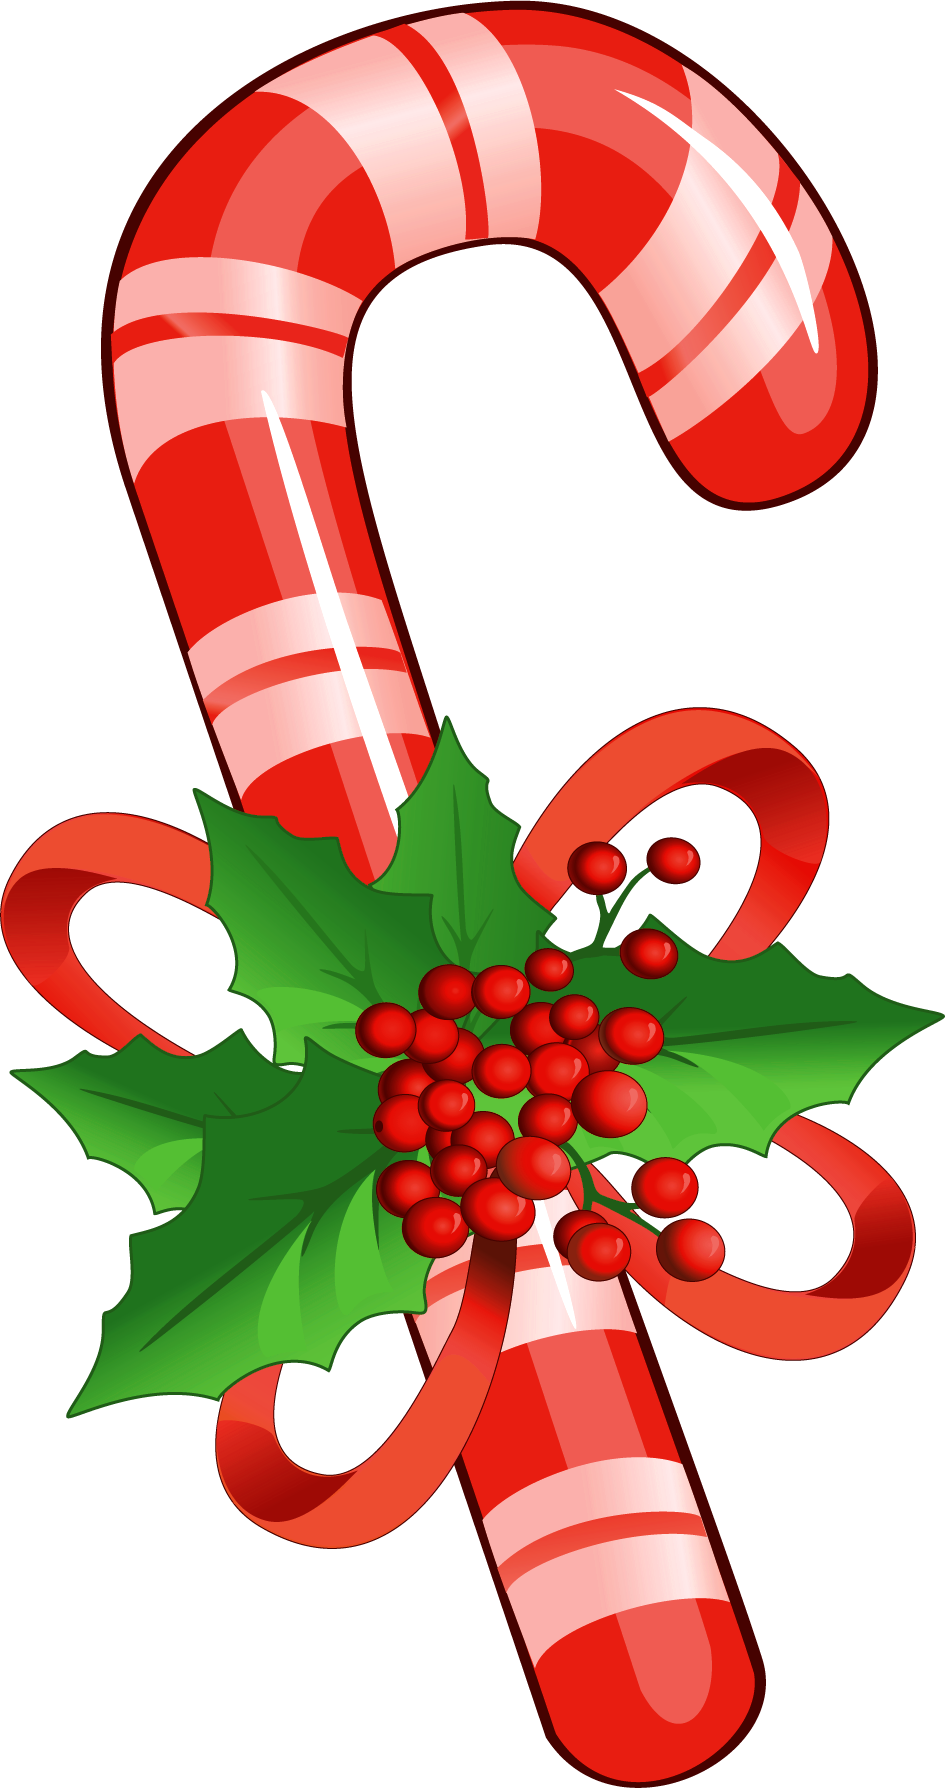 Candy Cane Clipart-Candy cane clipart-7